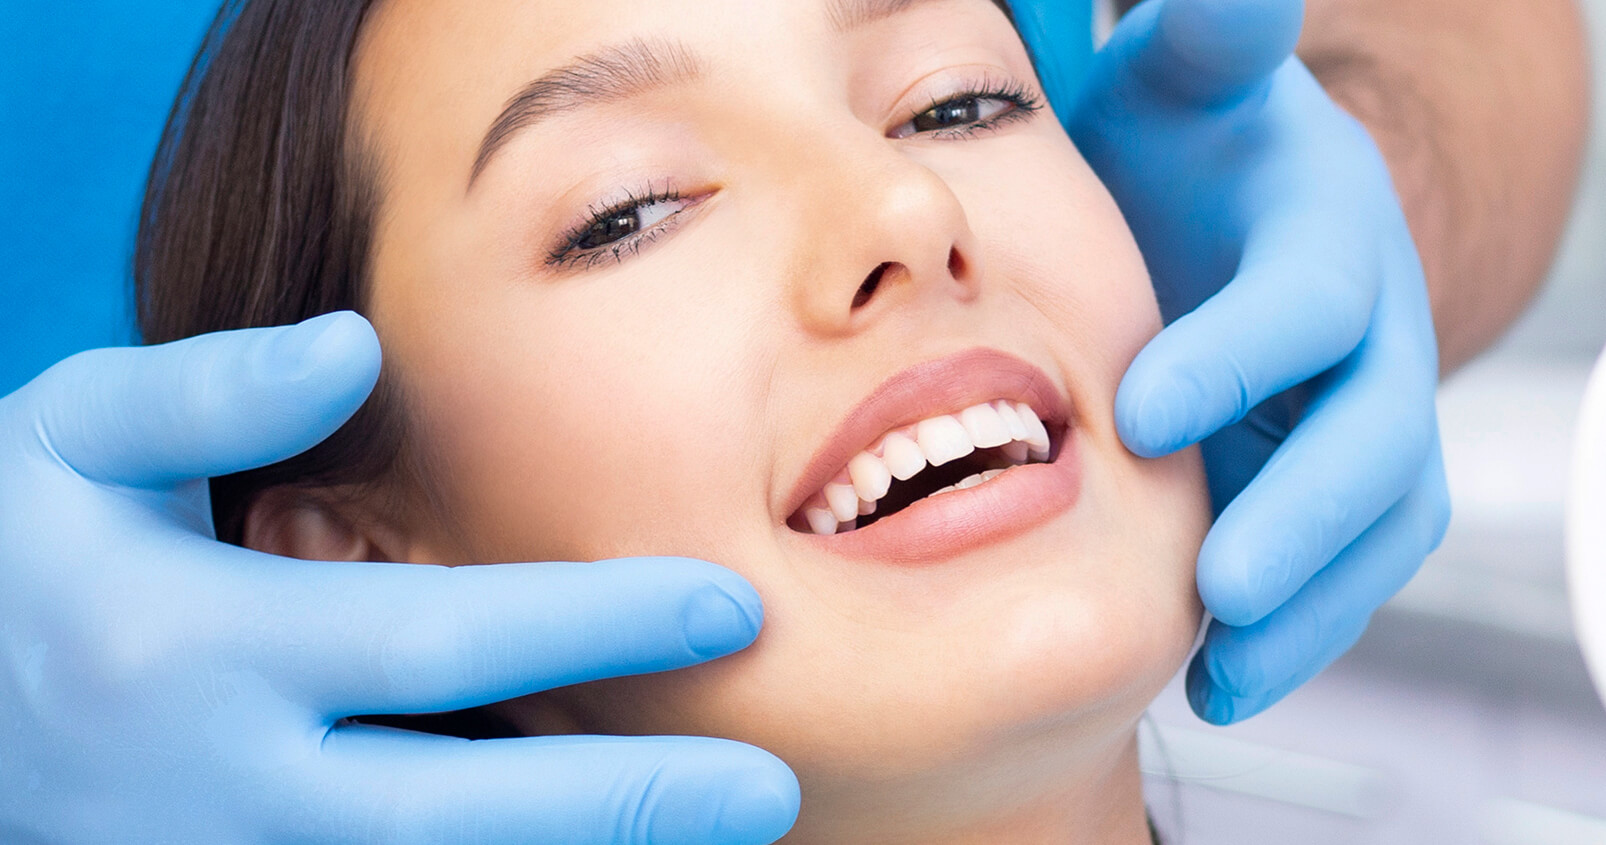 Are you on the lookout for a 'cosmetic dentist near me' in Covina?